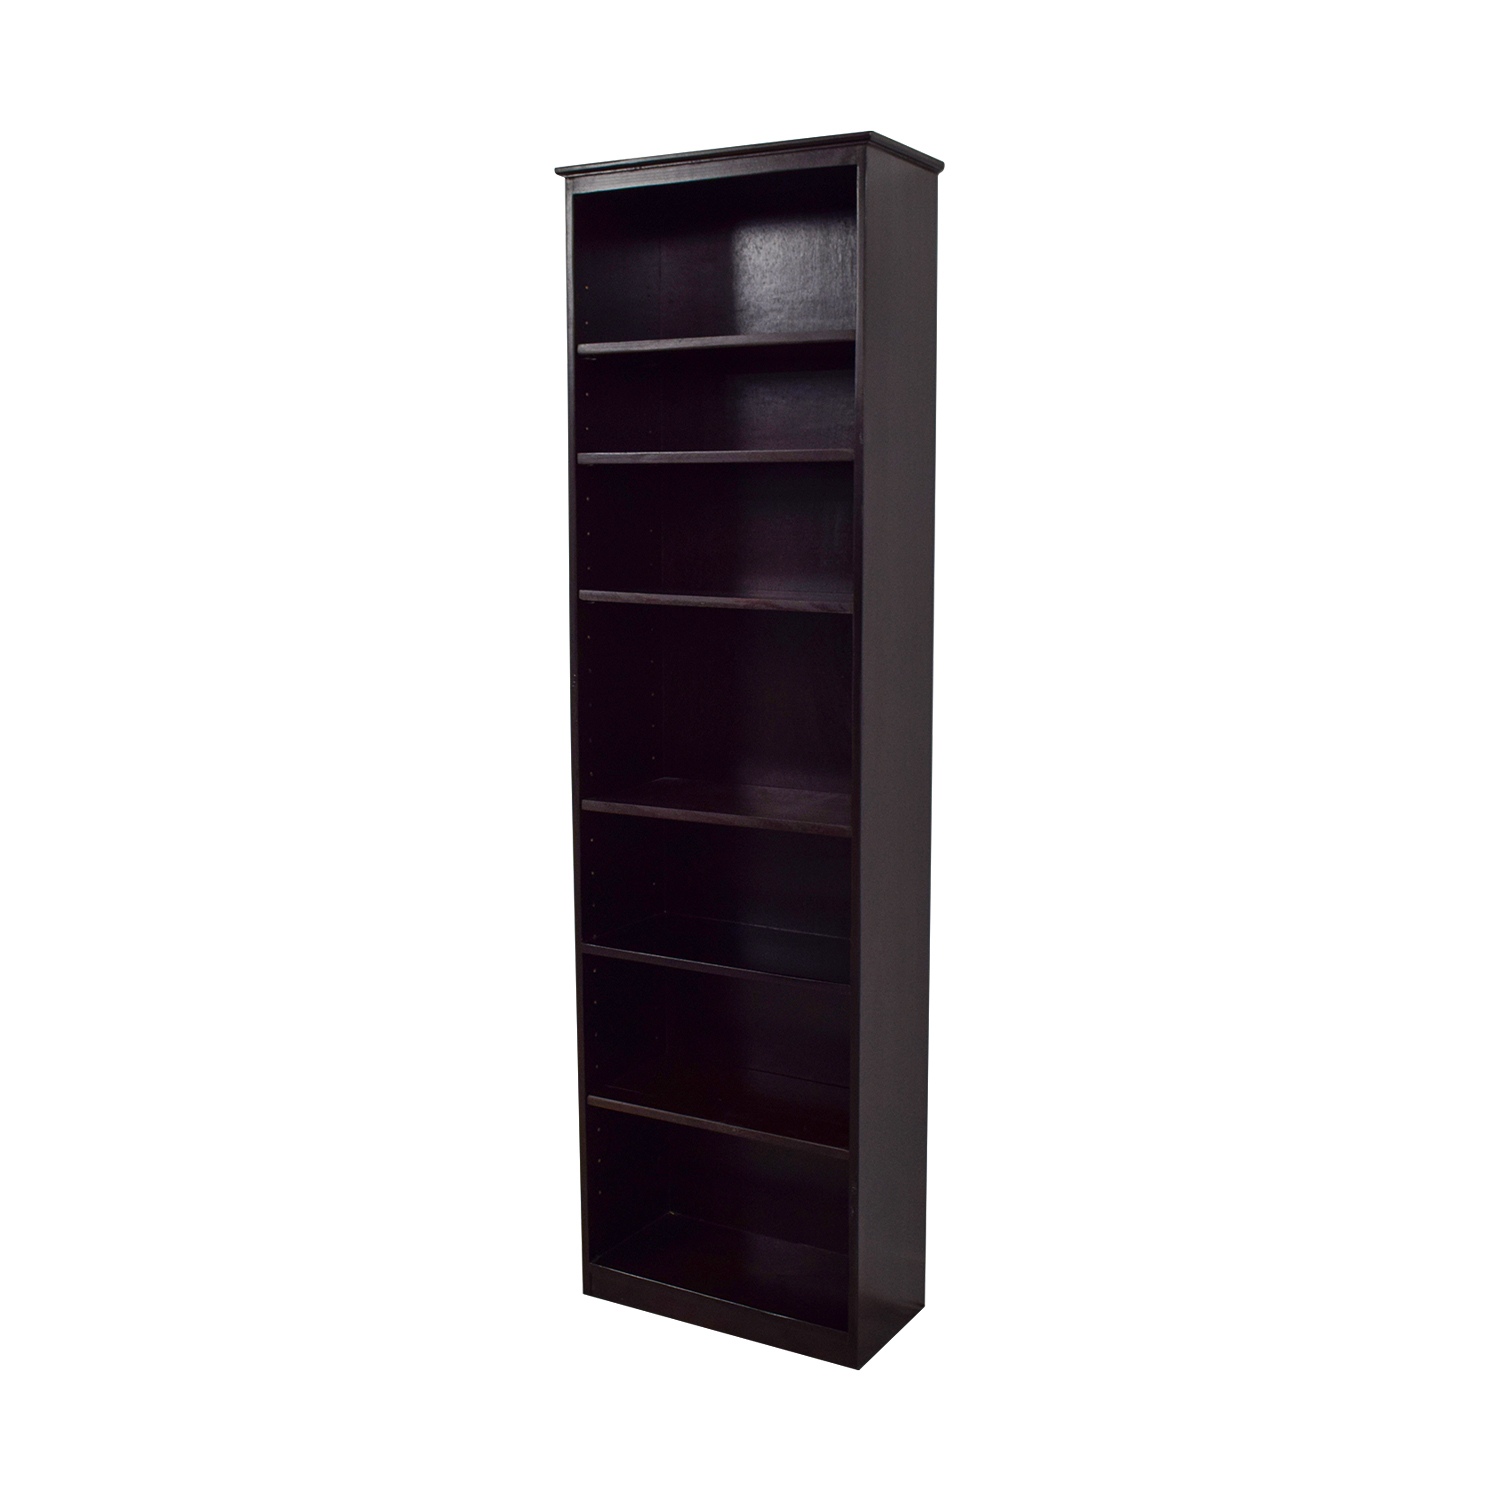 Gothic Cabinet Craft Gothic Cabinet Craft Tall Bookshelf coupon